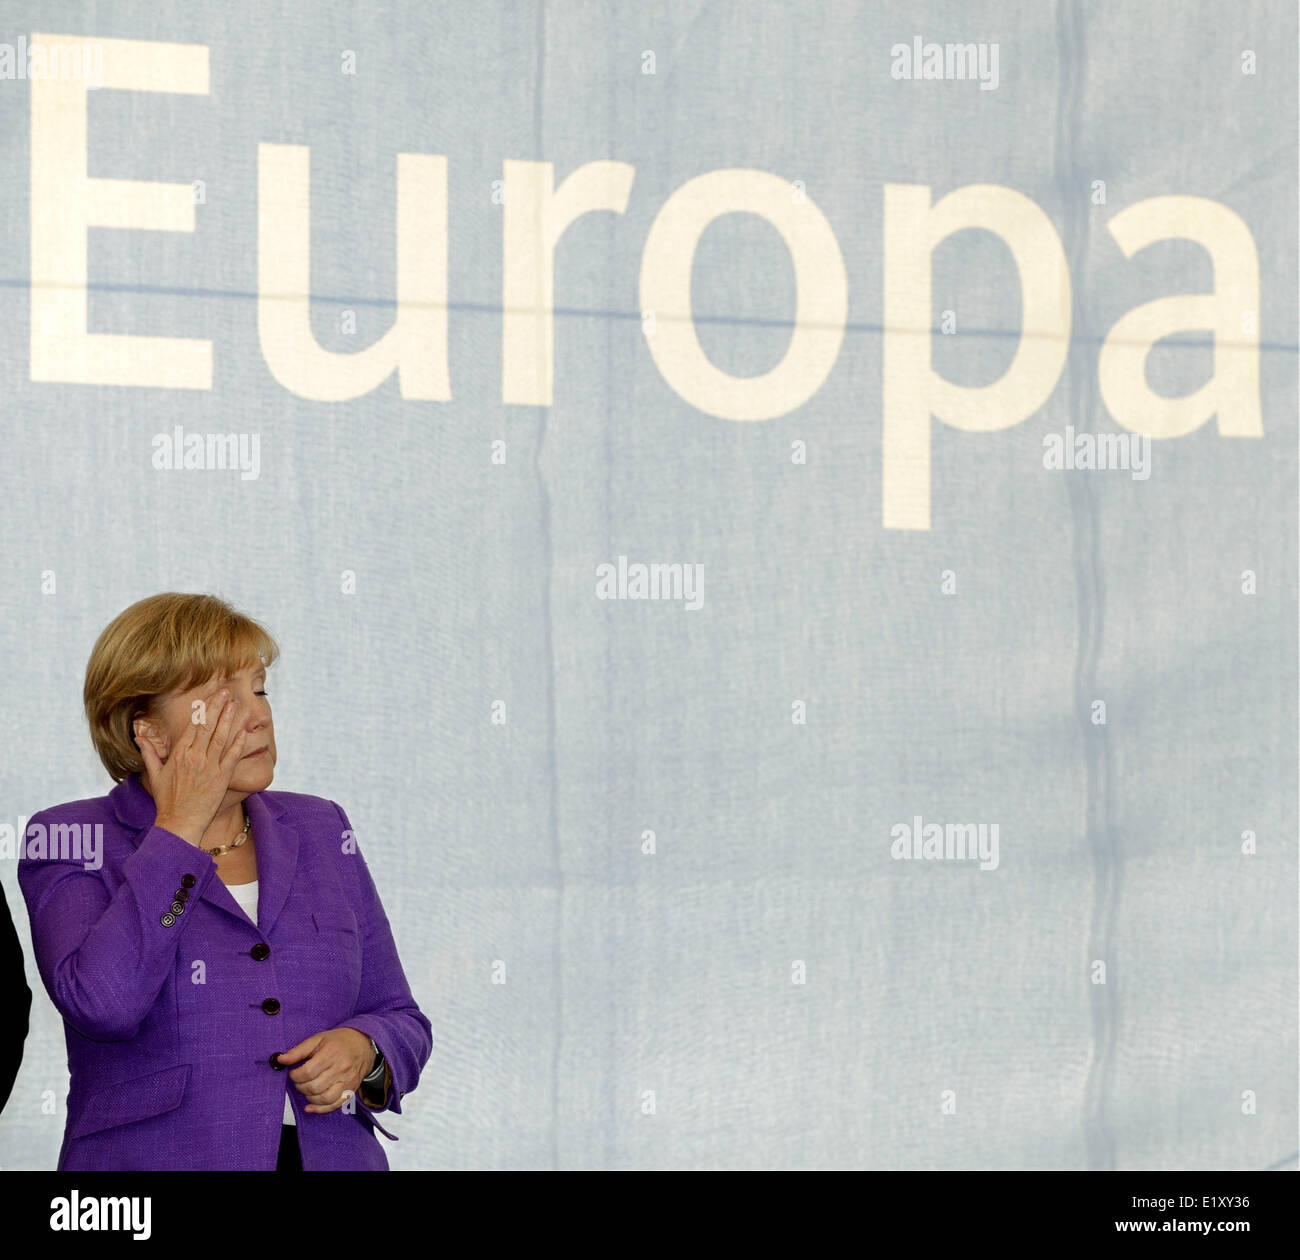 Chancellor Angela Merkel (CDU) stands below the writing 'Europa' during the final event of the election - Stock Image